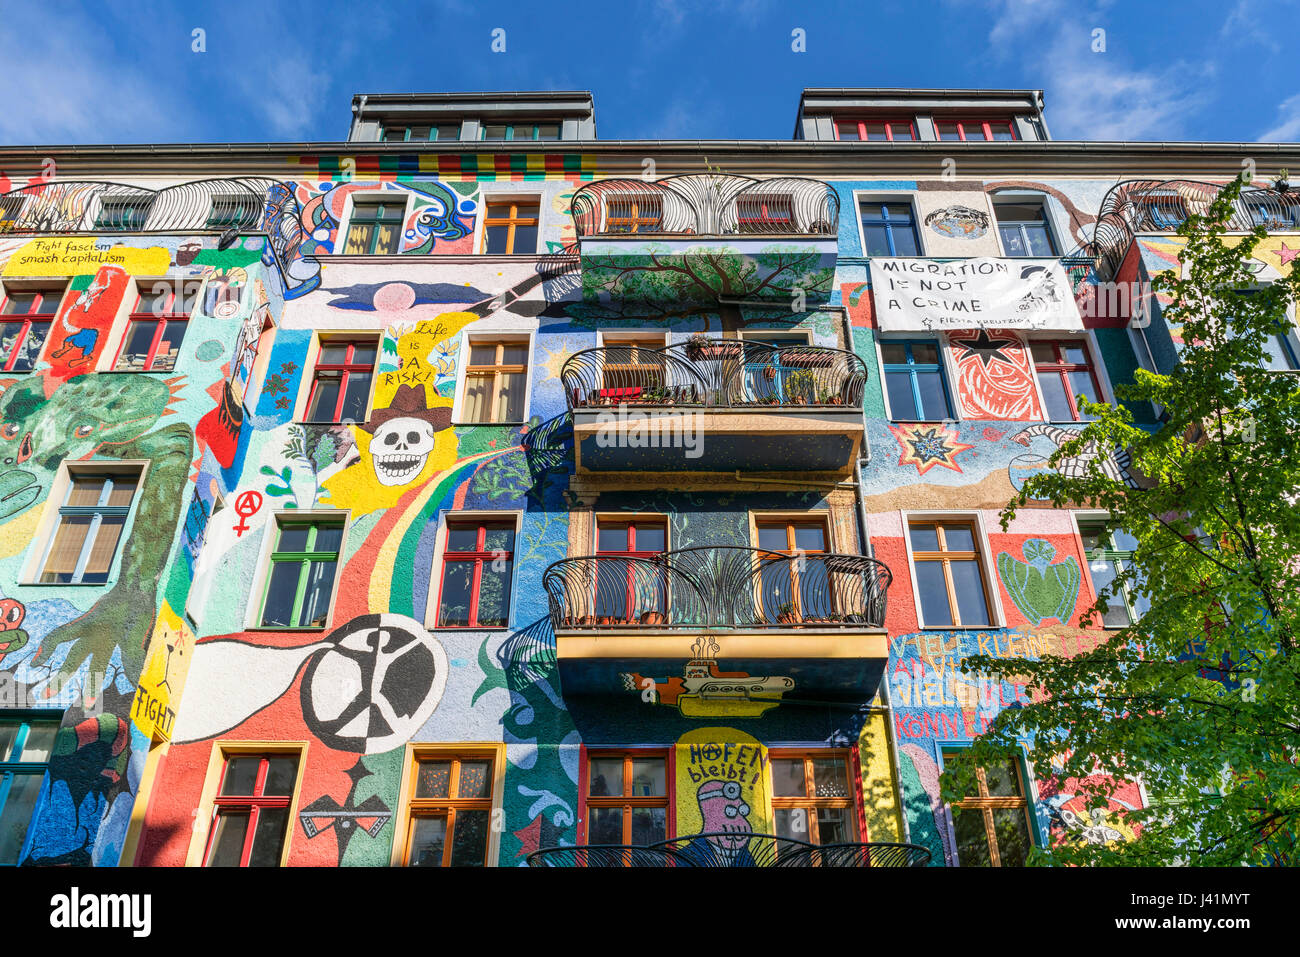 Painted facade in Friedrichshain, colorful wall painting,  Berlin, Germany Stock Photo